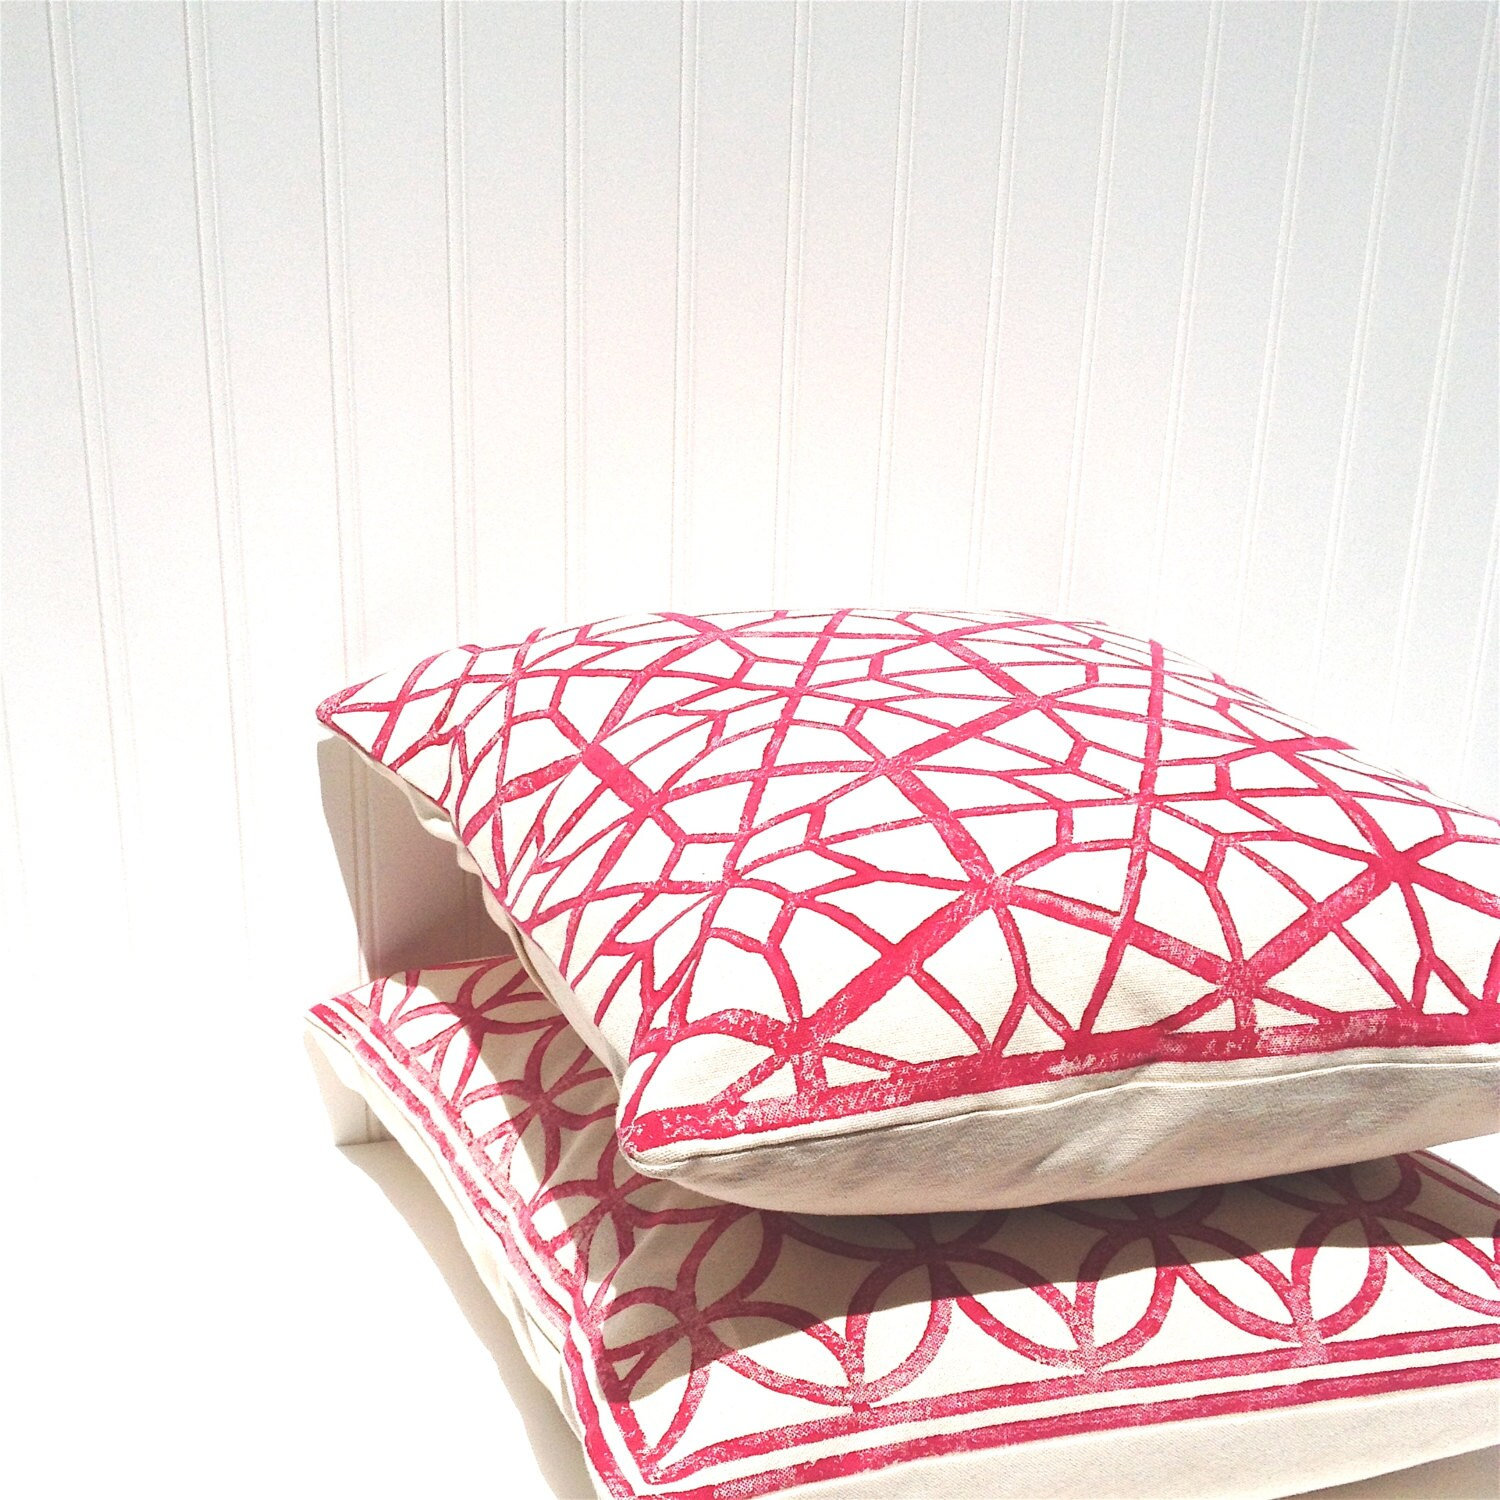 Throw Pillows With Stars : Red Star Throw Pillow Decorative Pillow Cover Handprinted